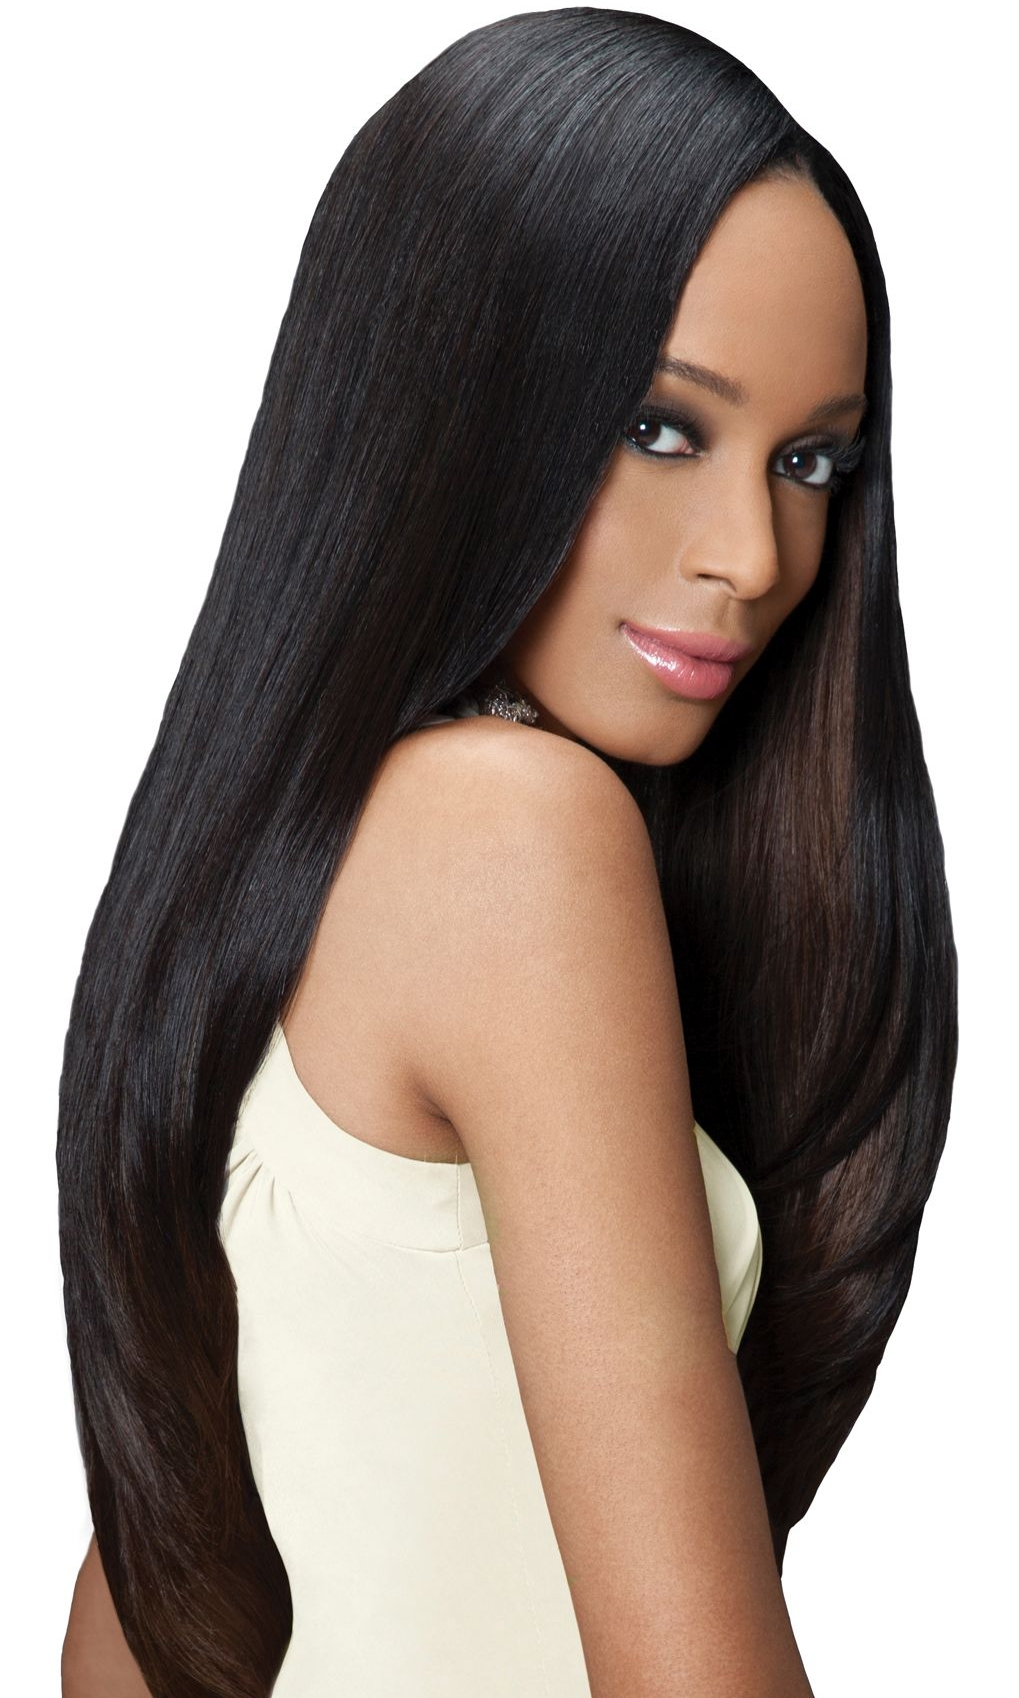 100% Premium Virgin Hair